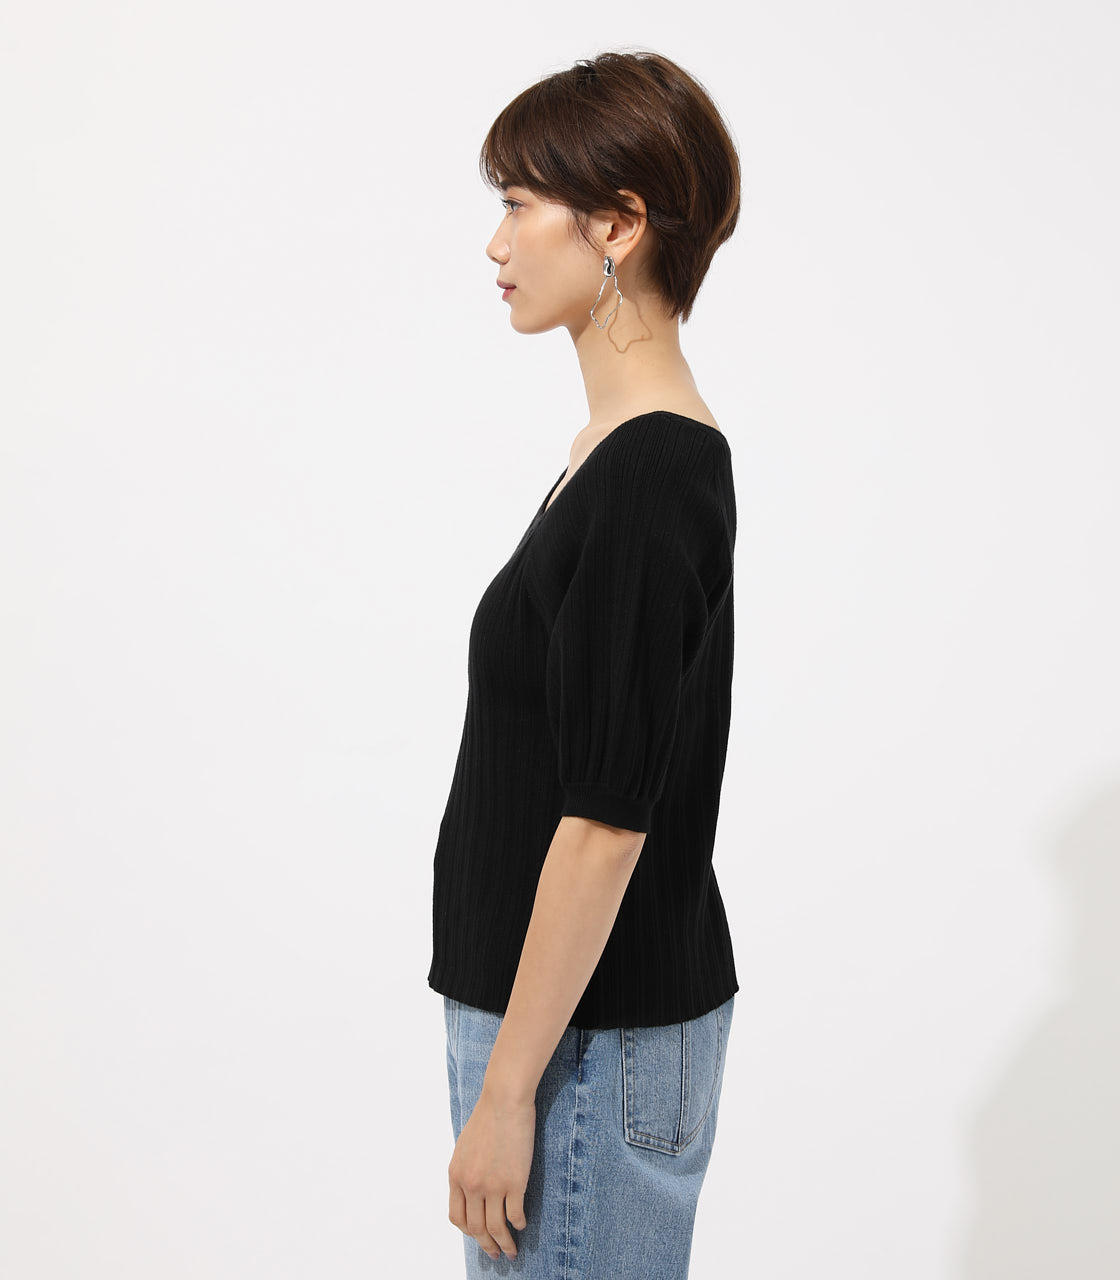 Puff sleeve knit tops/パフスリーブニットトップス 詳細画像 BLK 5